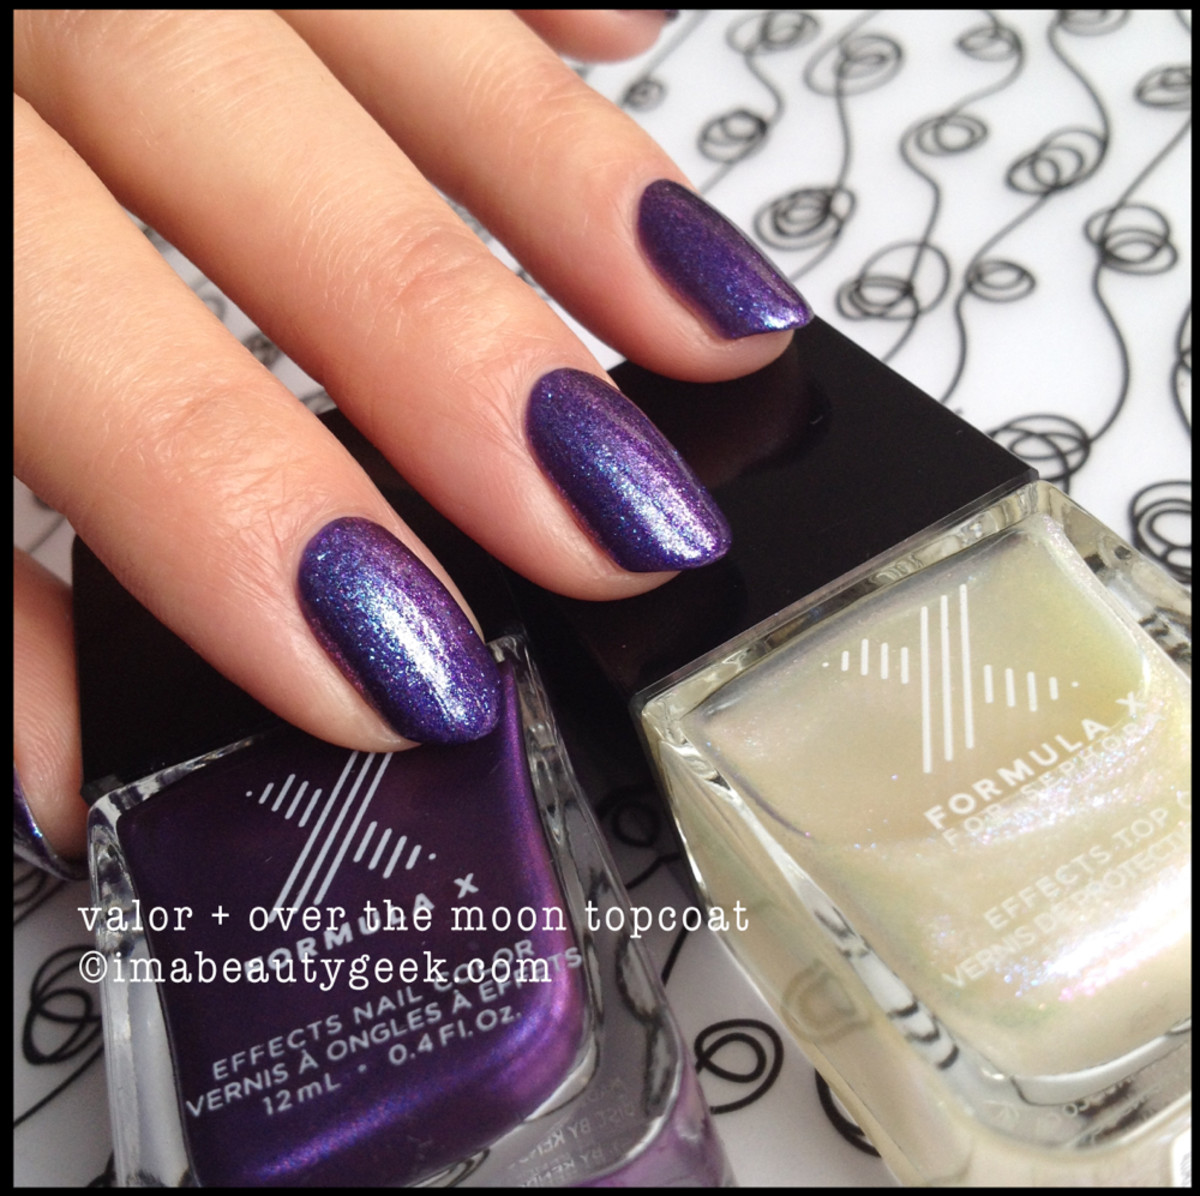 Formula X Valor w Over The Moon Topcoat Sephora Brushed Metallics 2014